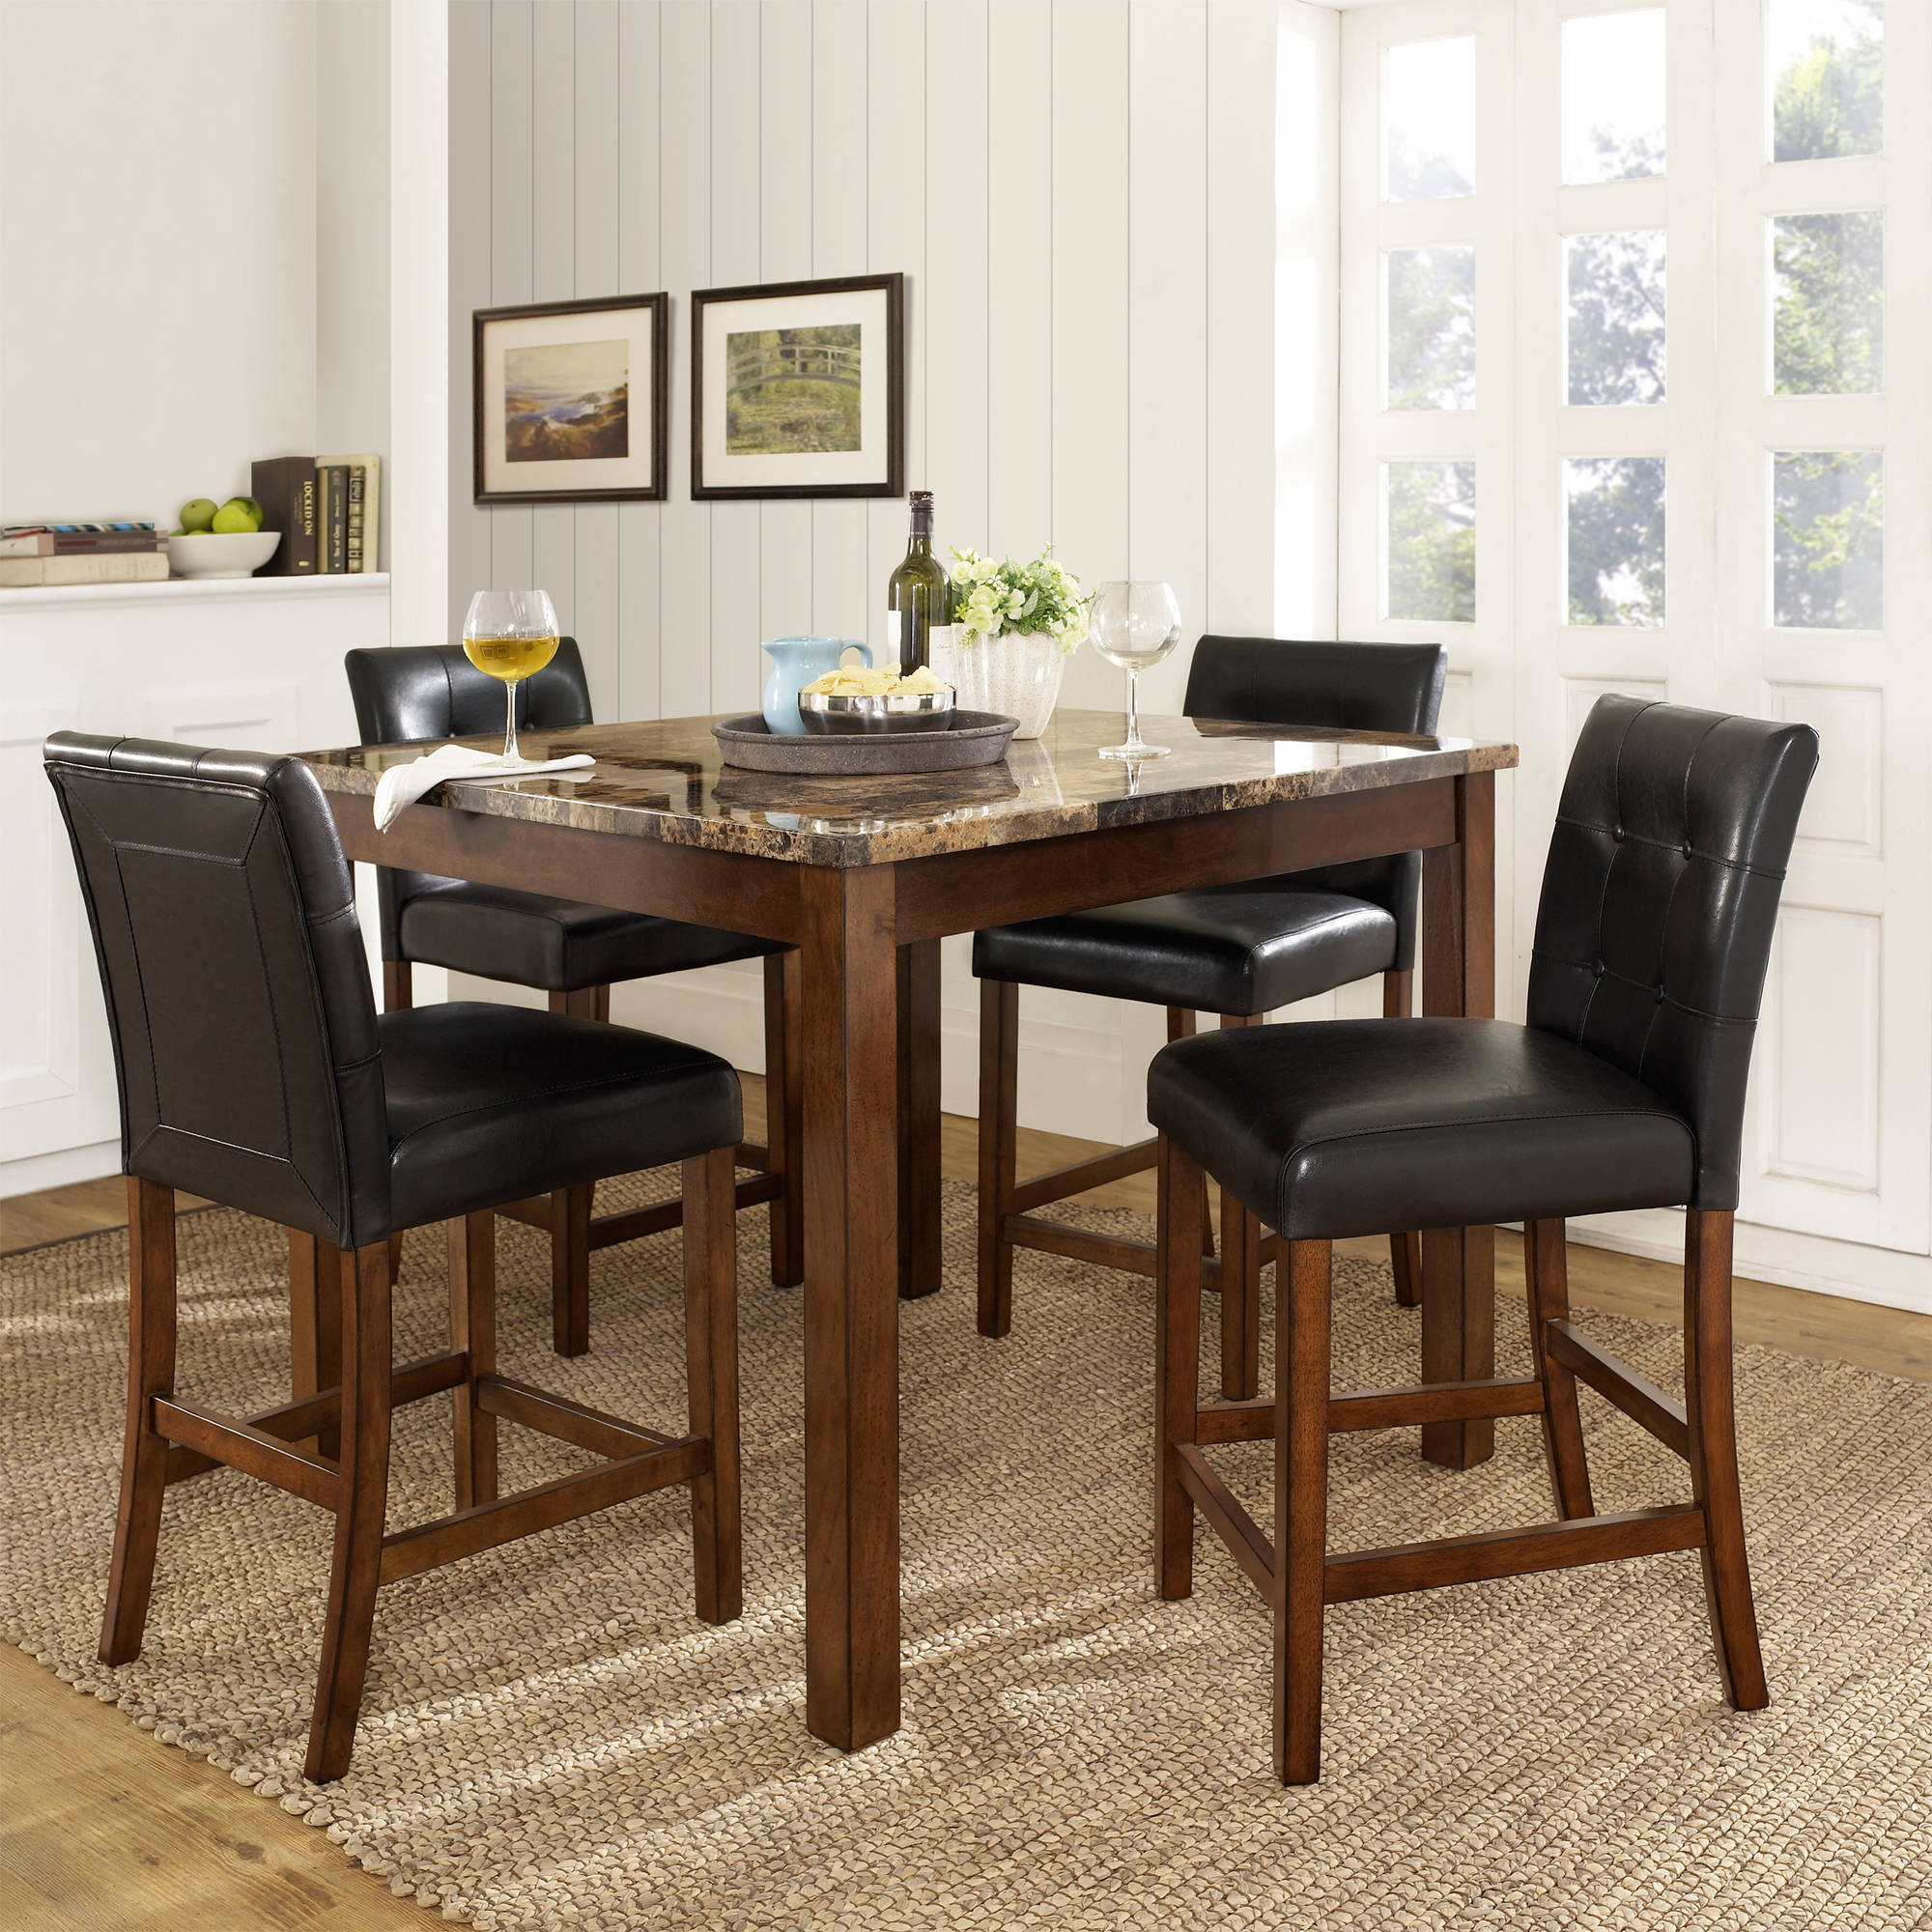 Dining Room Table And Chairs Captivating Kitchen & Dining Furniture  Walmart Inspiration